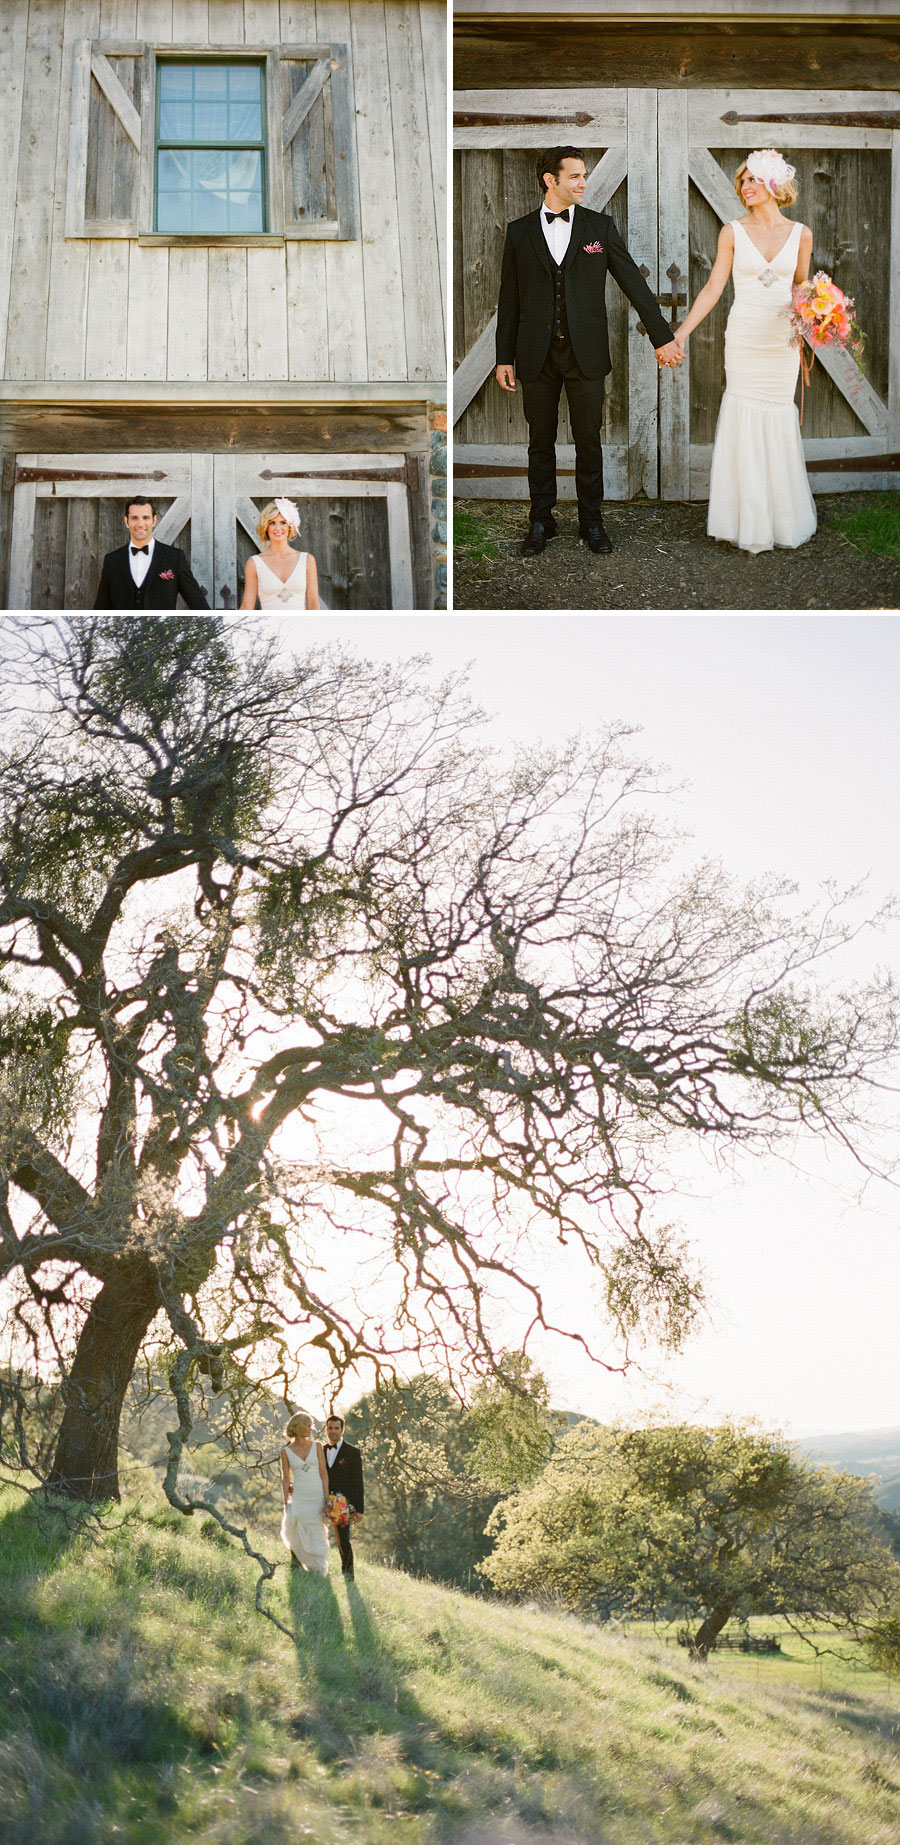 Jose-Villa-at-figueroa-mountain-farmhouse-wedding-shoot-0022